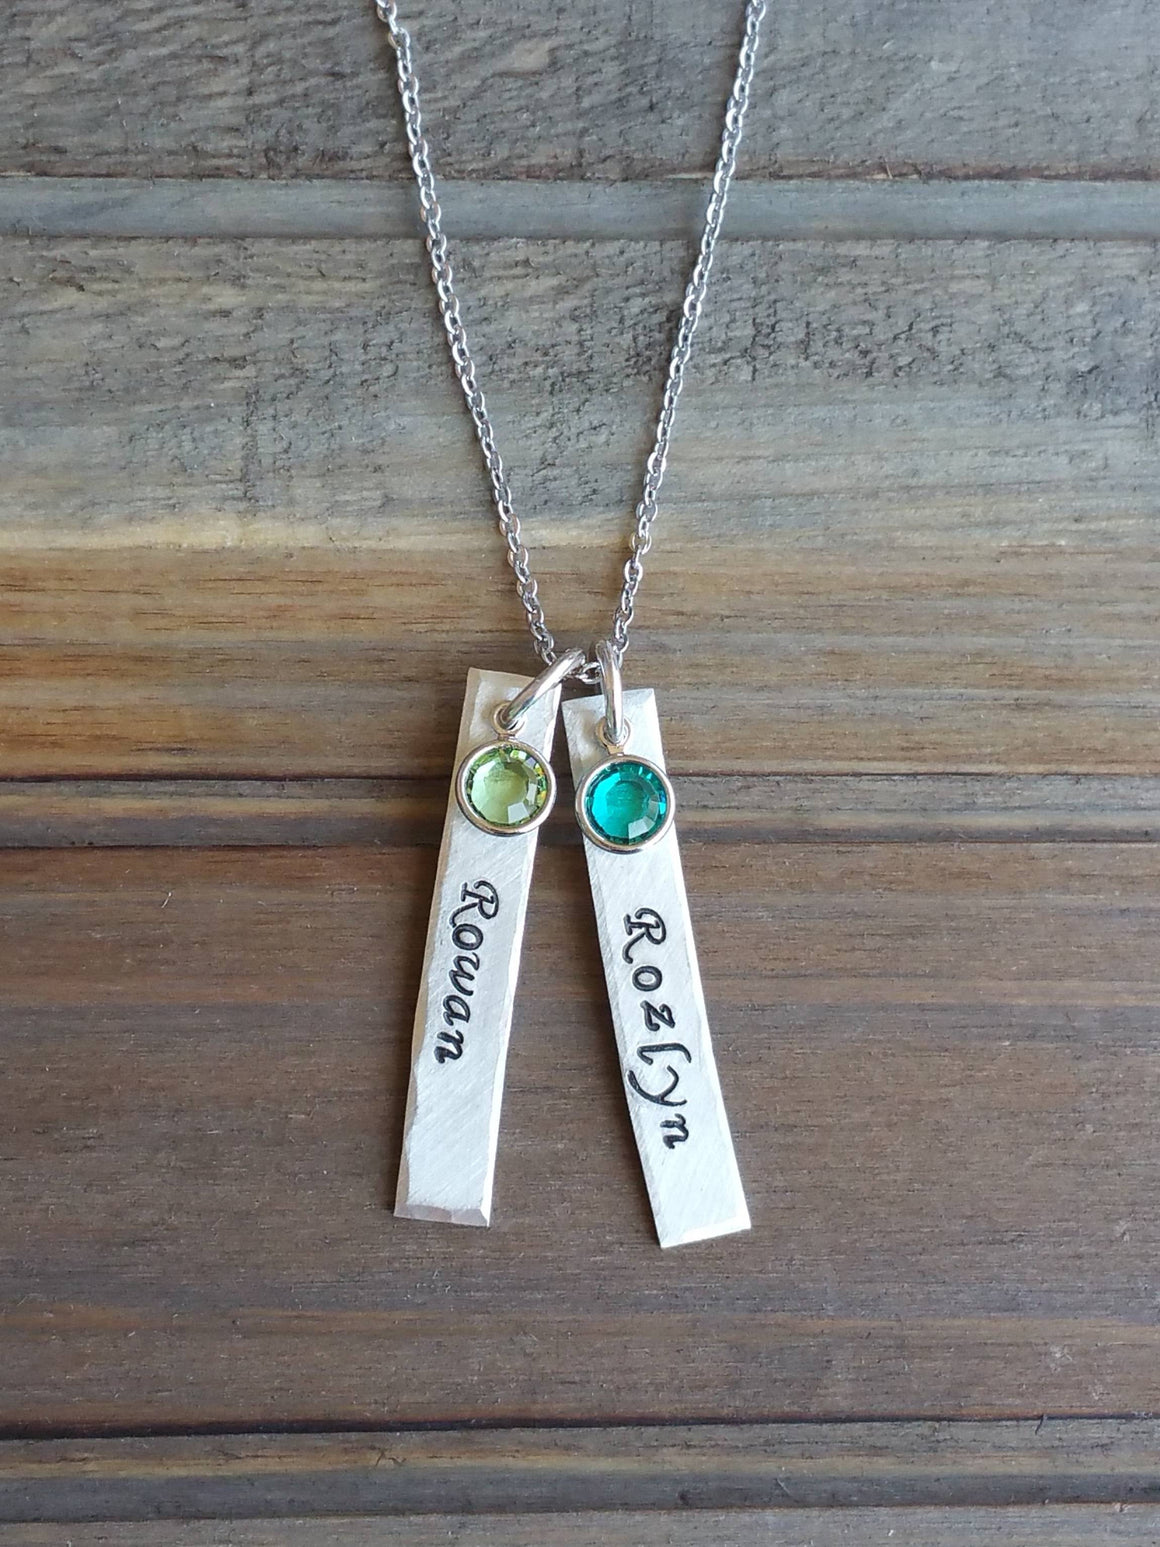 Personalized bars with birthstones necklace for mom